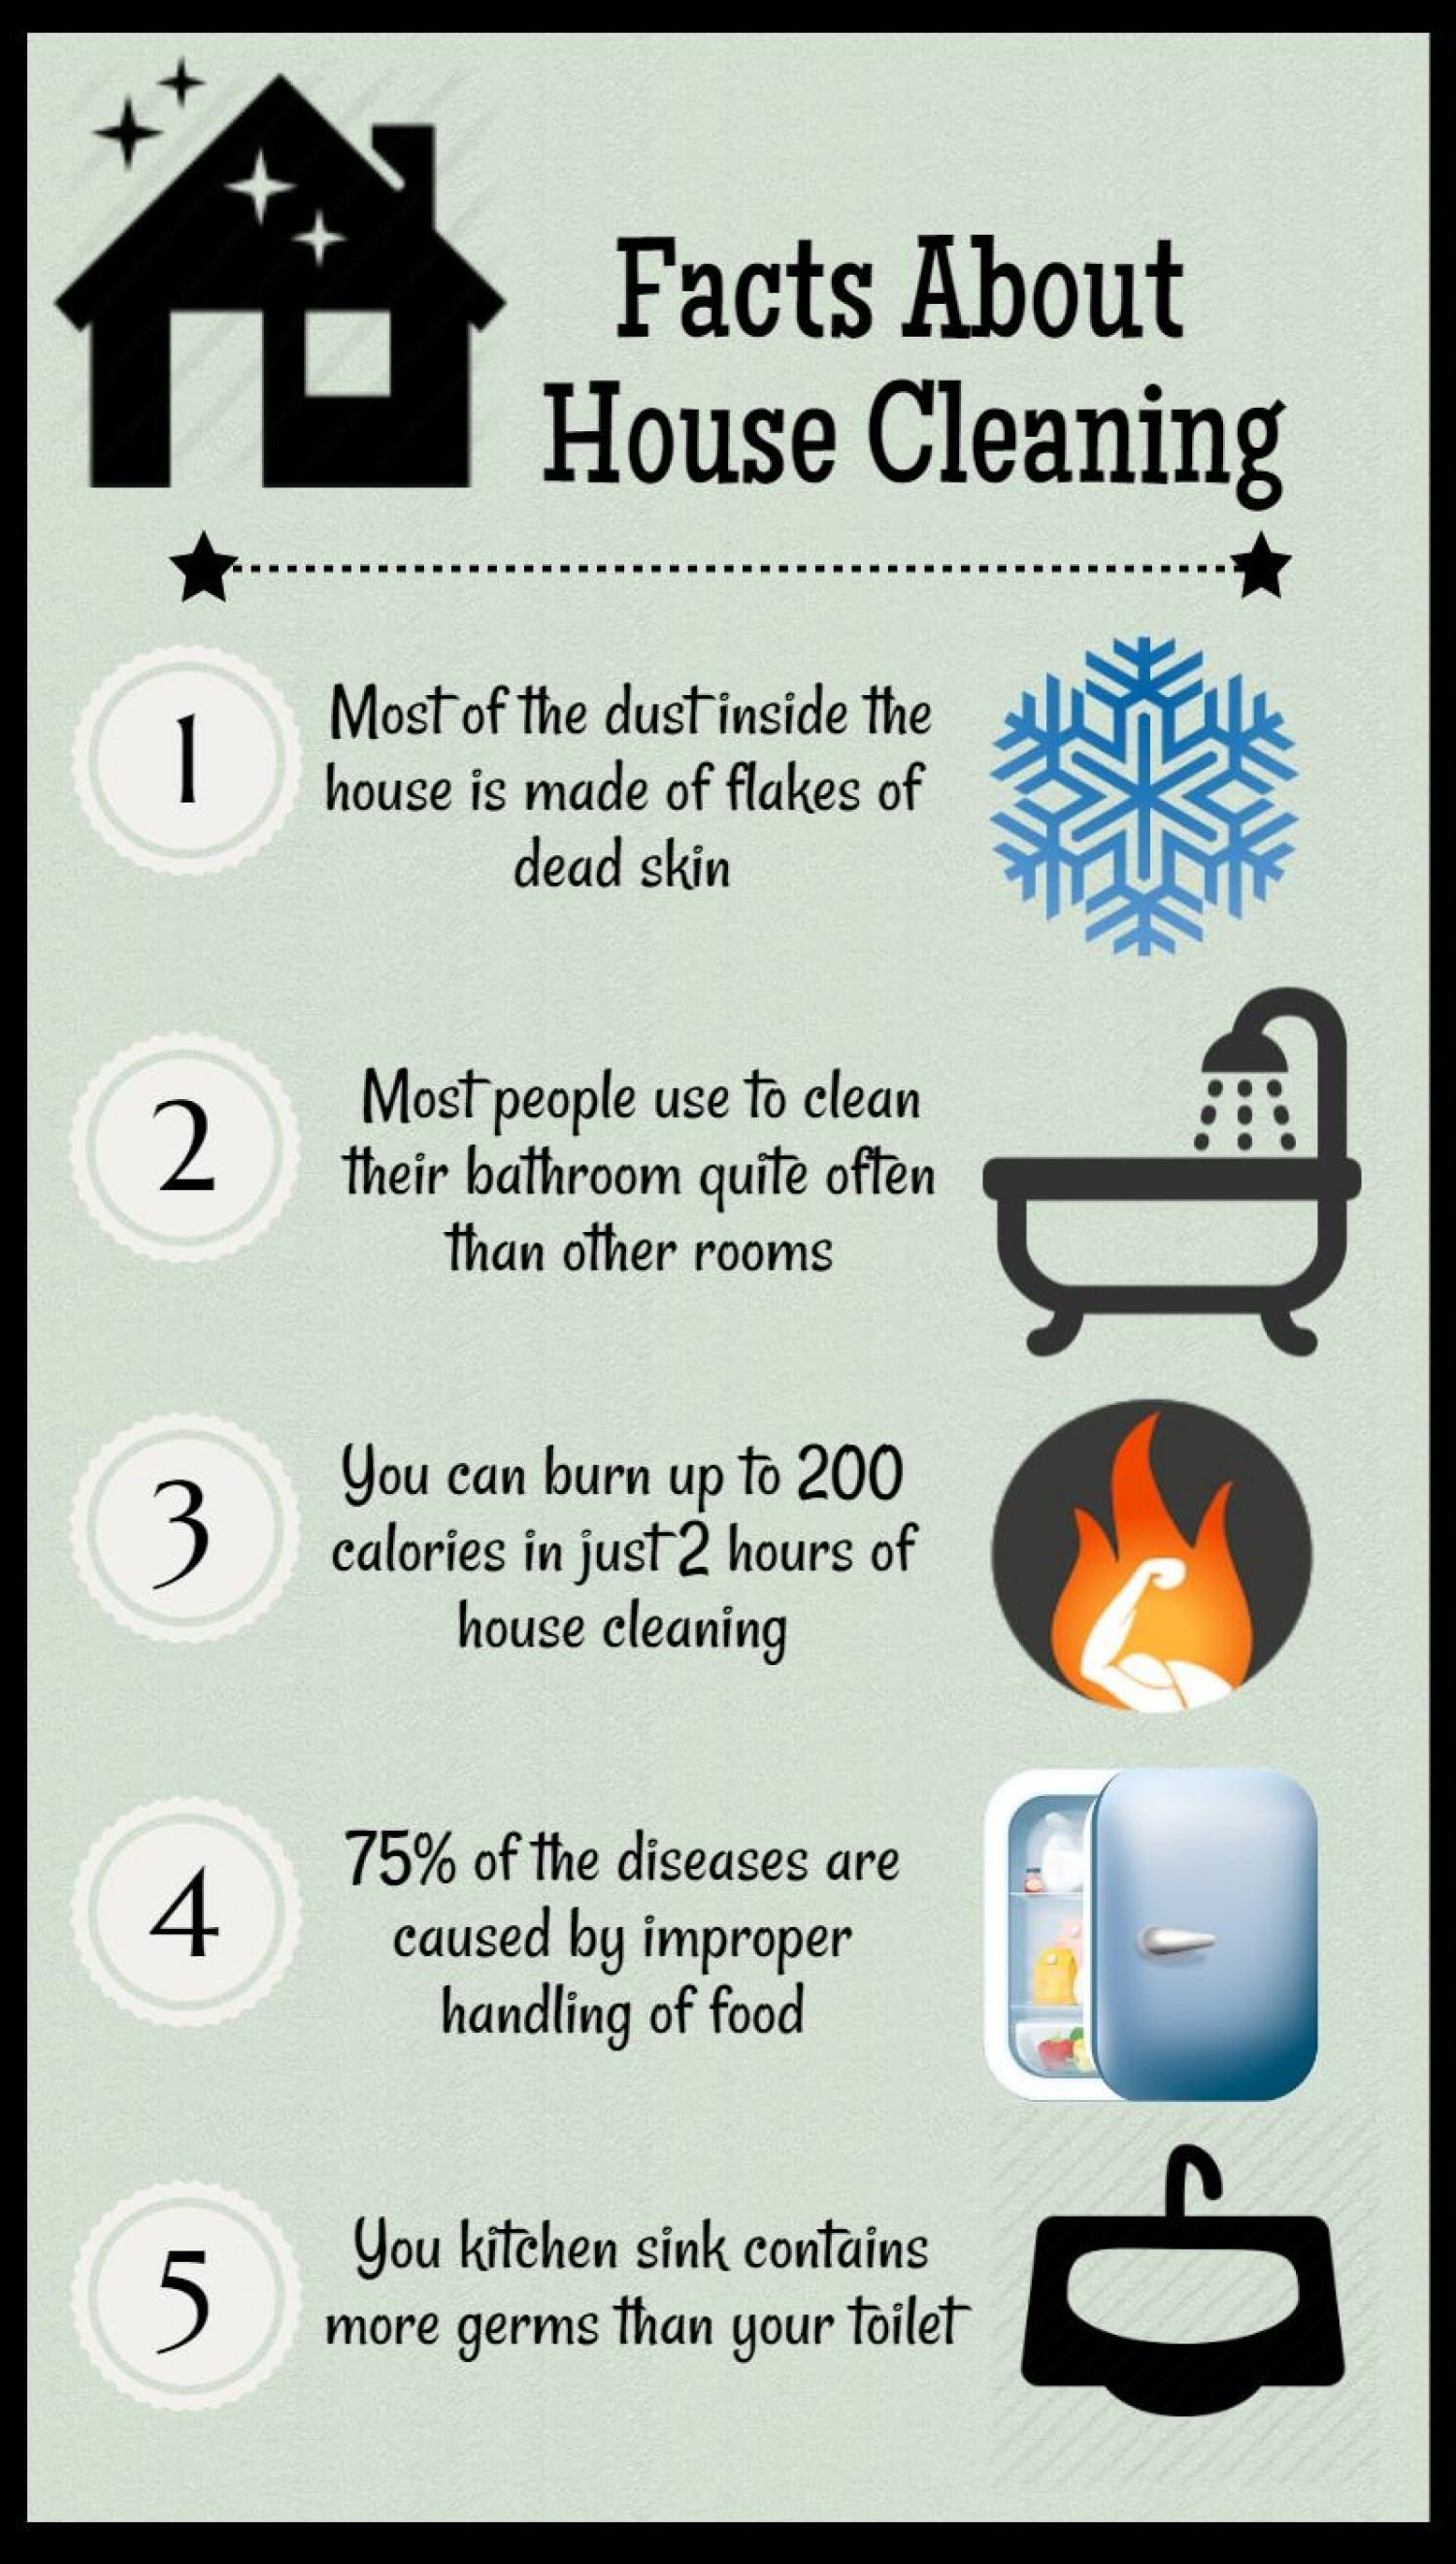 House cleaning tips Infographic